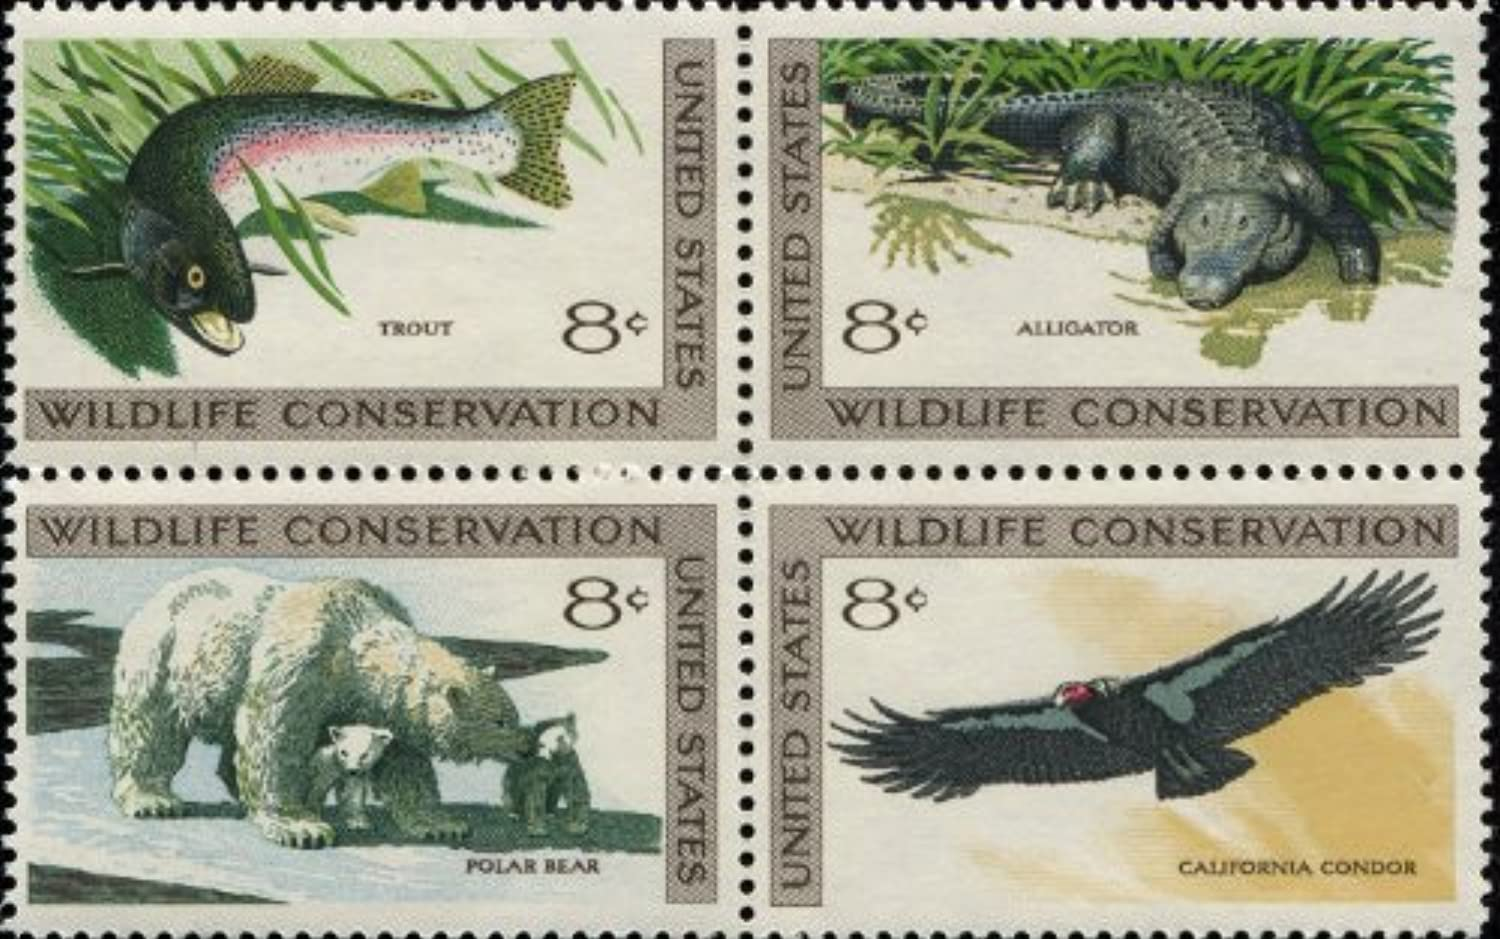 WILDLIFE CONSERVATION  TROUT  ALLIGATOR  POLAR BEAR  CALIFORNIA CONDOR  1430 BLOCK of 4 x 8 US Postage Stamps by USPS